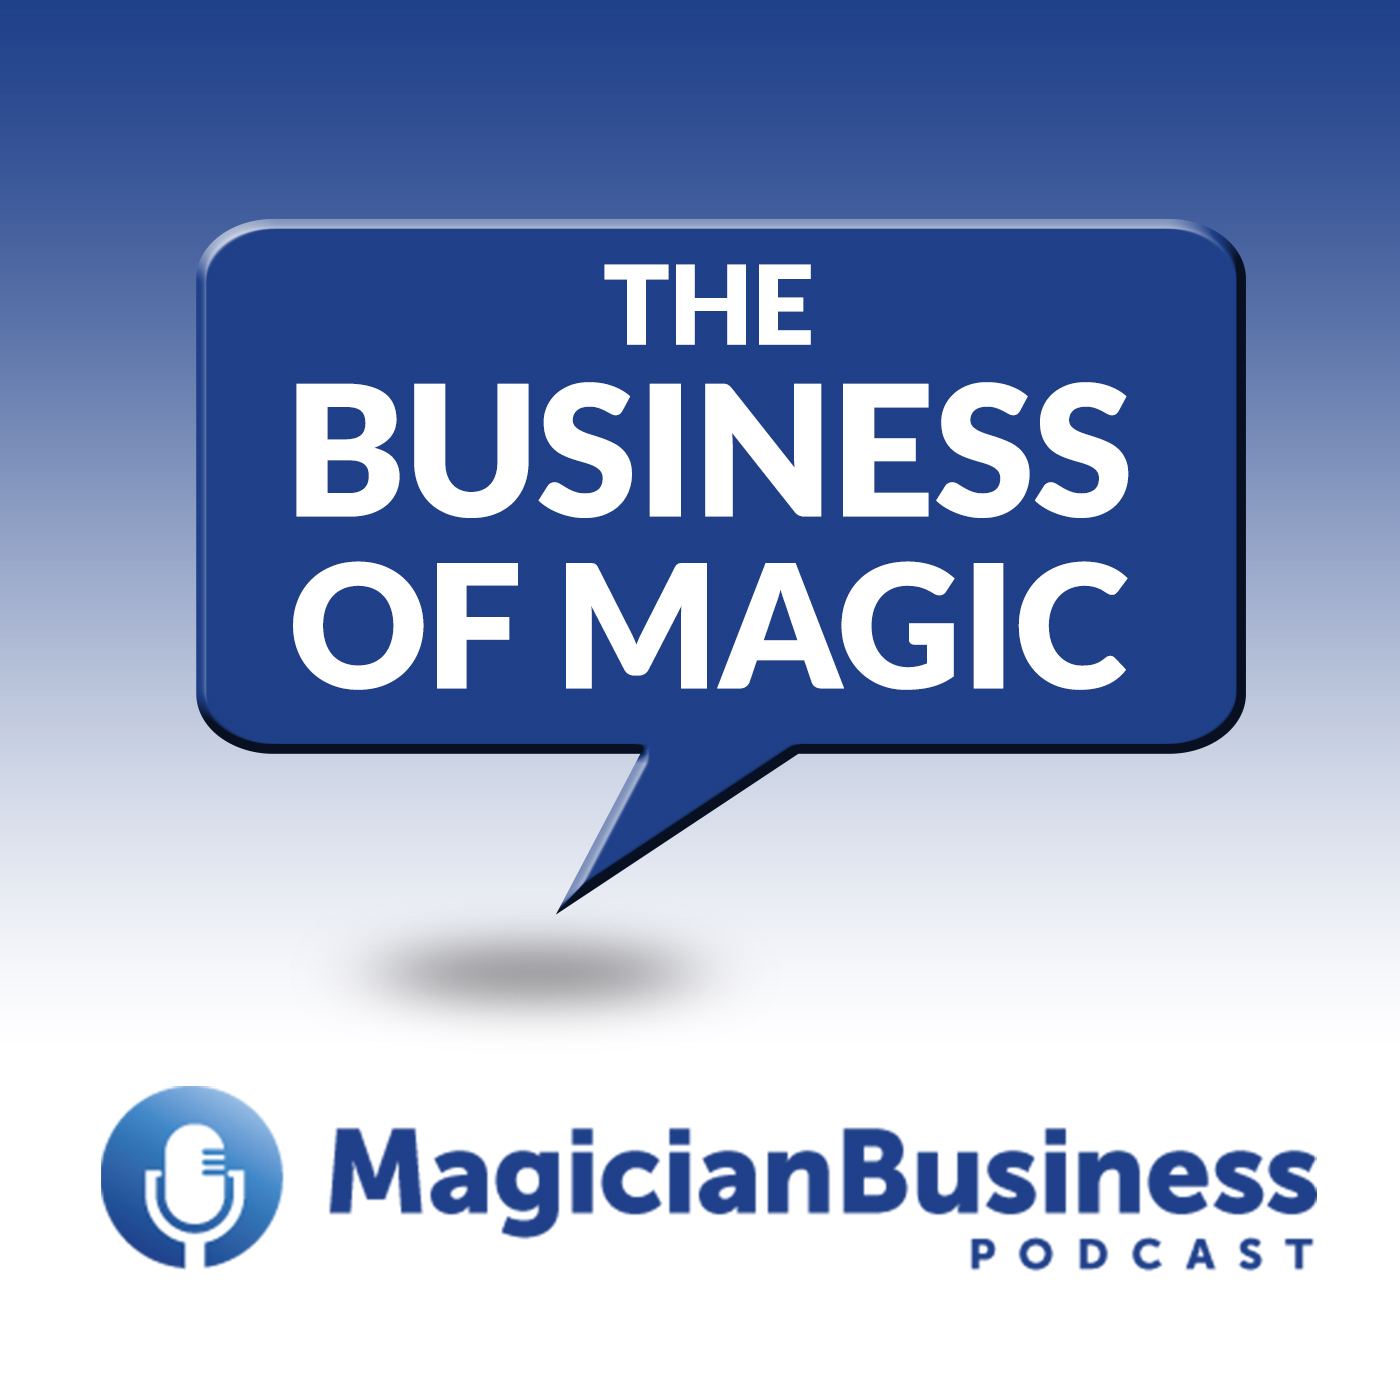 Magician Business